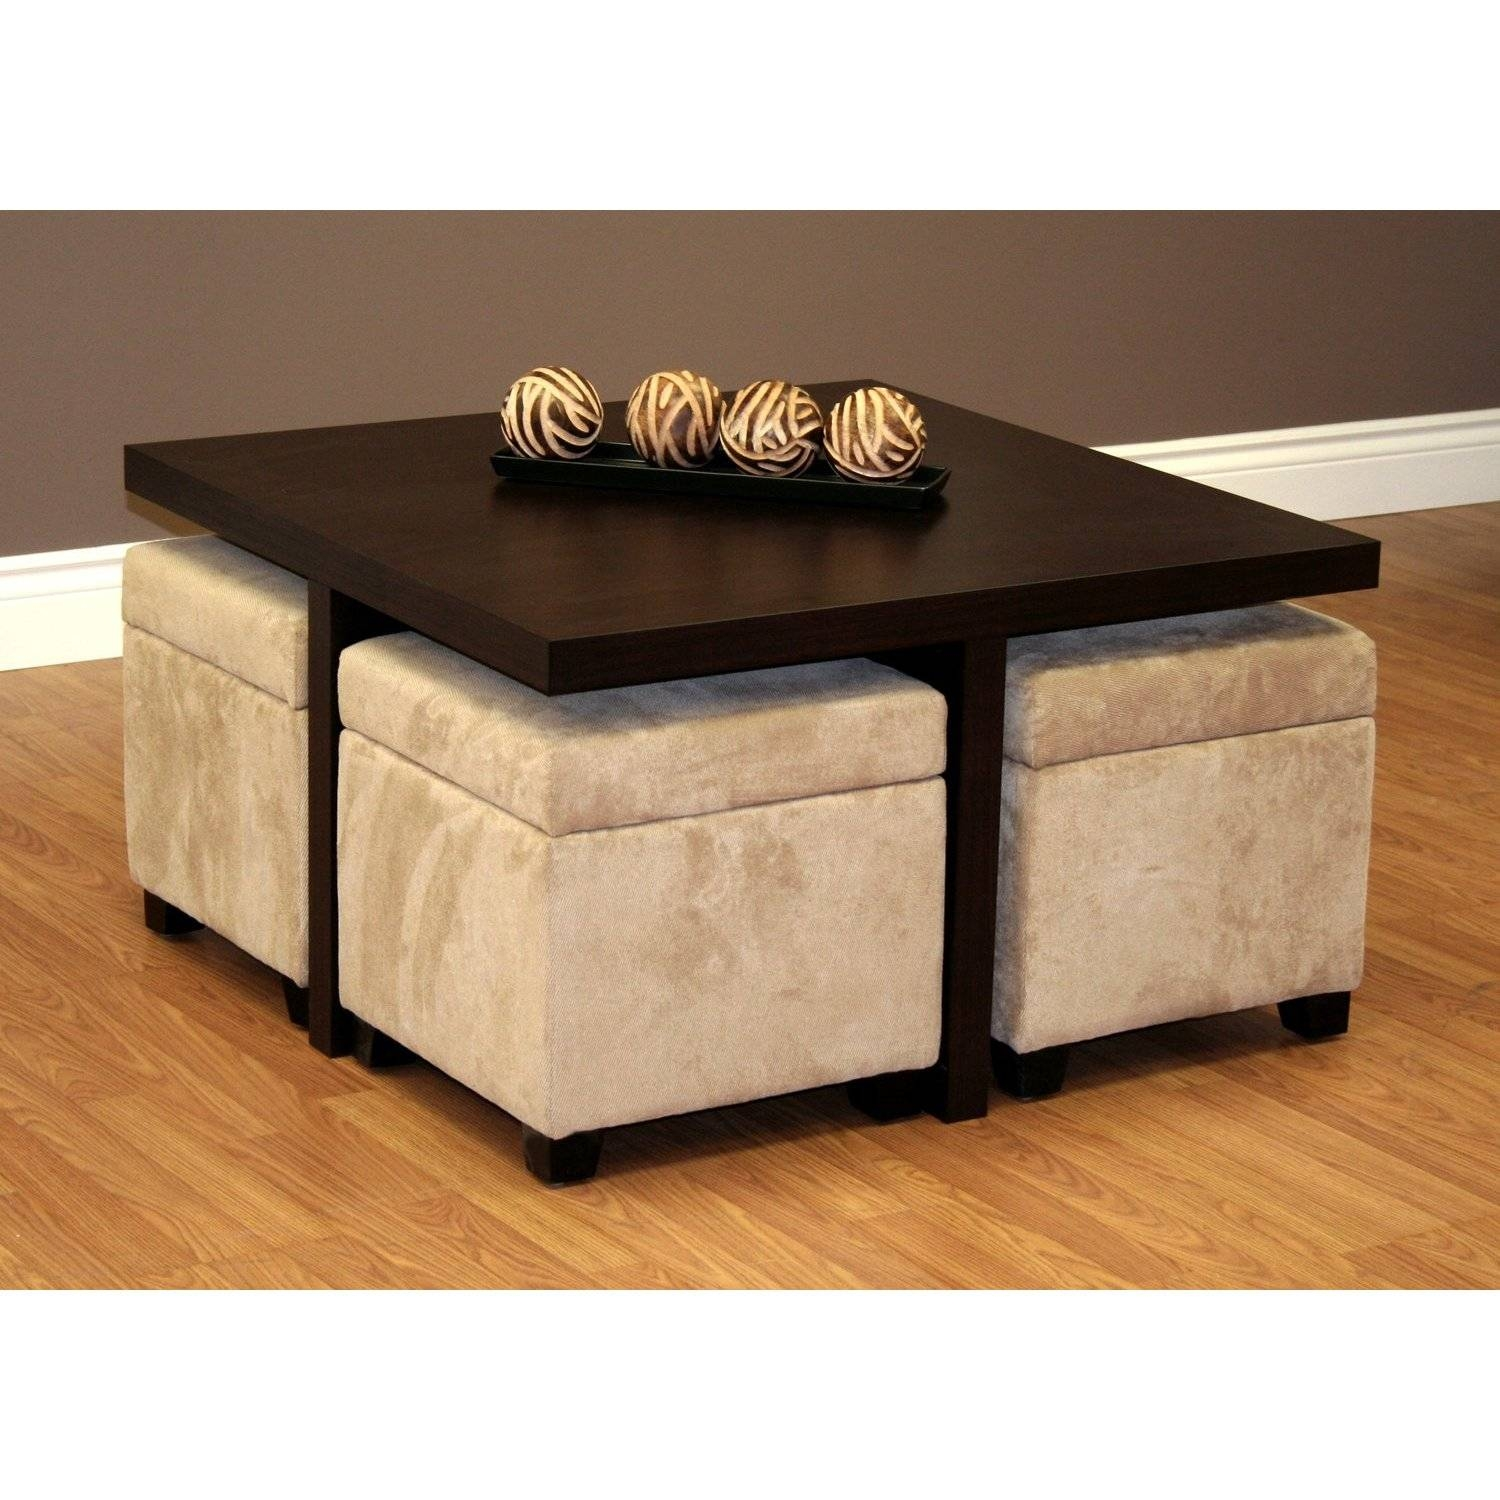 Furniture: Luxury Coffee Table With Stools For Living Room for Square Dark Wood Coffee Tables (Image 17 of 30)